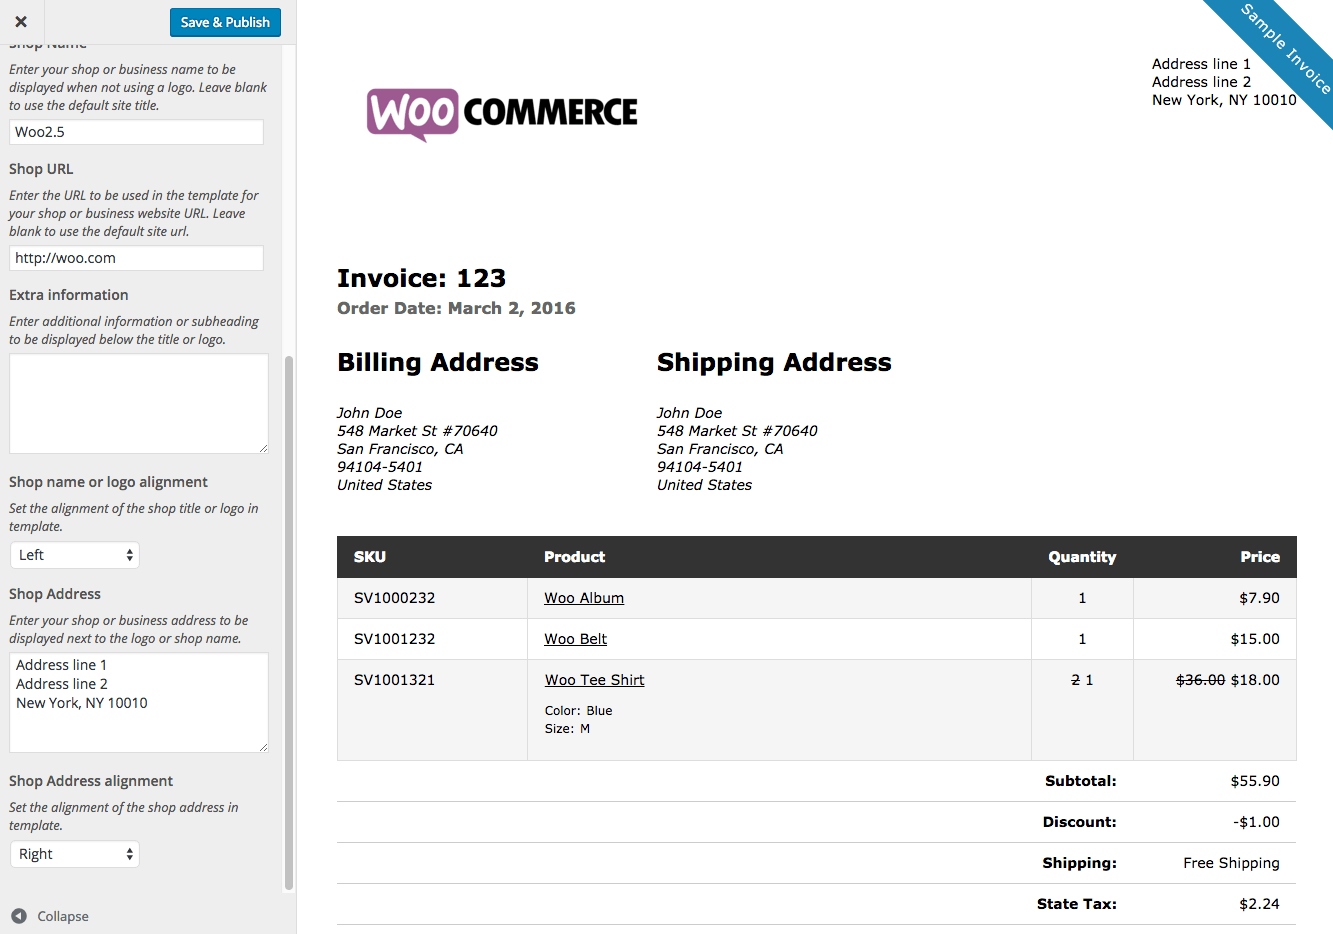 Darkfaderus  Winning Woocommerce Print Invoices Amp Packing Lists  Woocommerce Docs With Fascinating Woocommerce Print Invoices  Packing Lists Customizer With Cool Party City Return Policy No Receipt Also What Is Return Receipt Mail In Addition Free Printable Cash Receipts And What Is Receipt Book As Well As Registration Receipt Additionally E Ticket Itinerary Receipt From Docswoocommercecom With Darkfaderus  Fascinating Woocommerce Print Invoices Amp Packing Lists  Woocommerce Docs With Cool Woocommerce Print Invoices  Packing Lists Customizer And Winning Party City Return Policy No Receipt Also What Is Return Receipt Mail In Addition Free Printable Cash Receipts From Docswoocommercecom